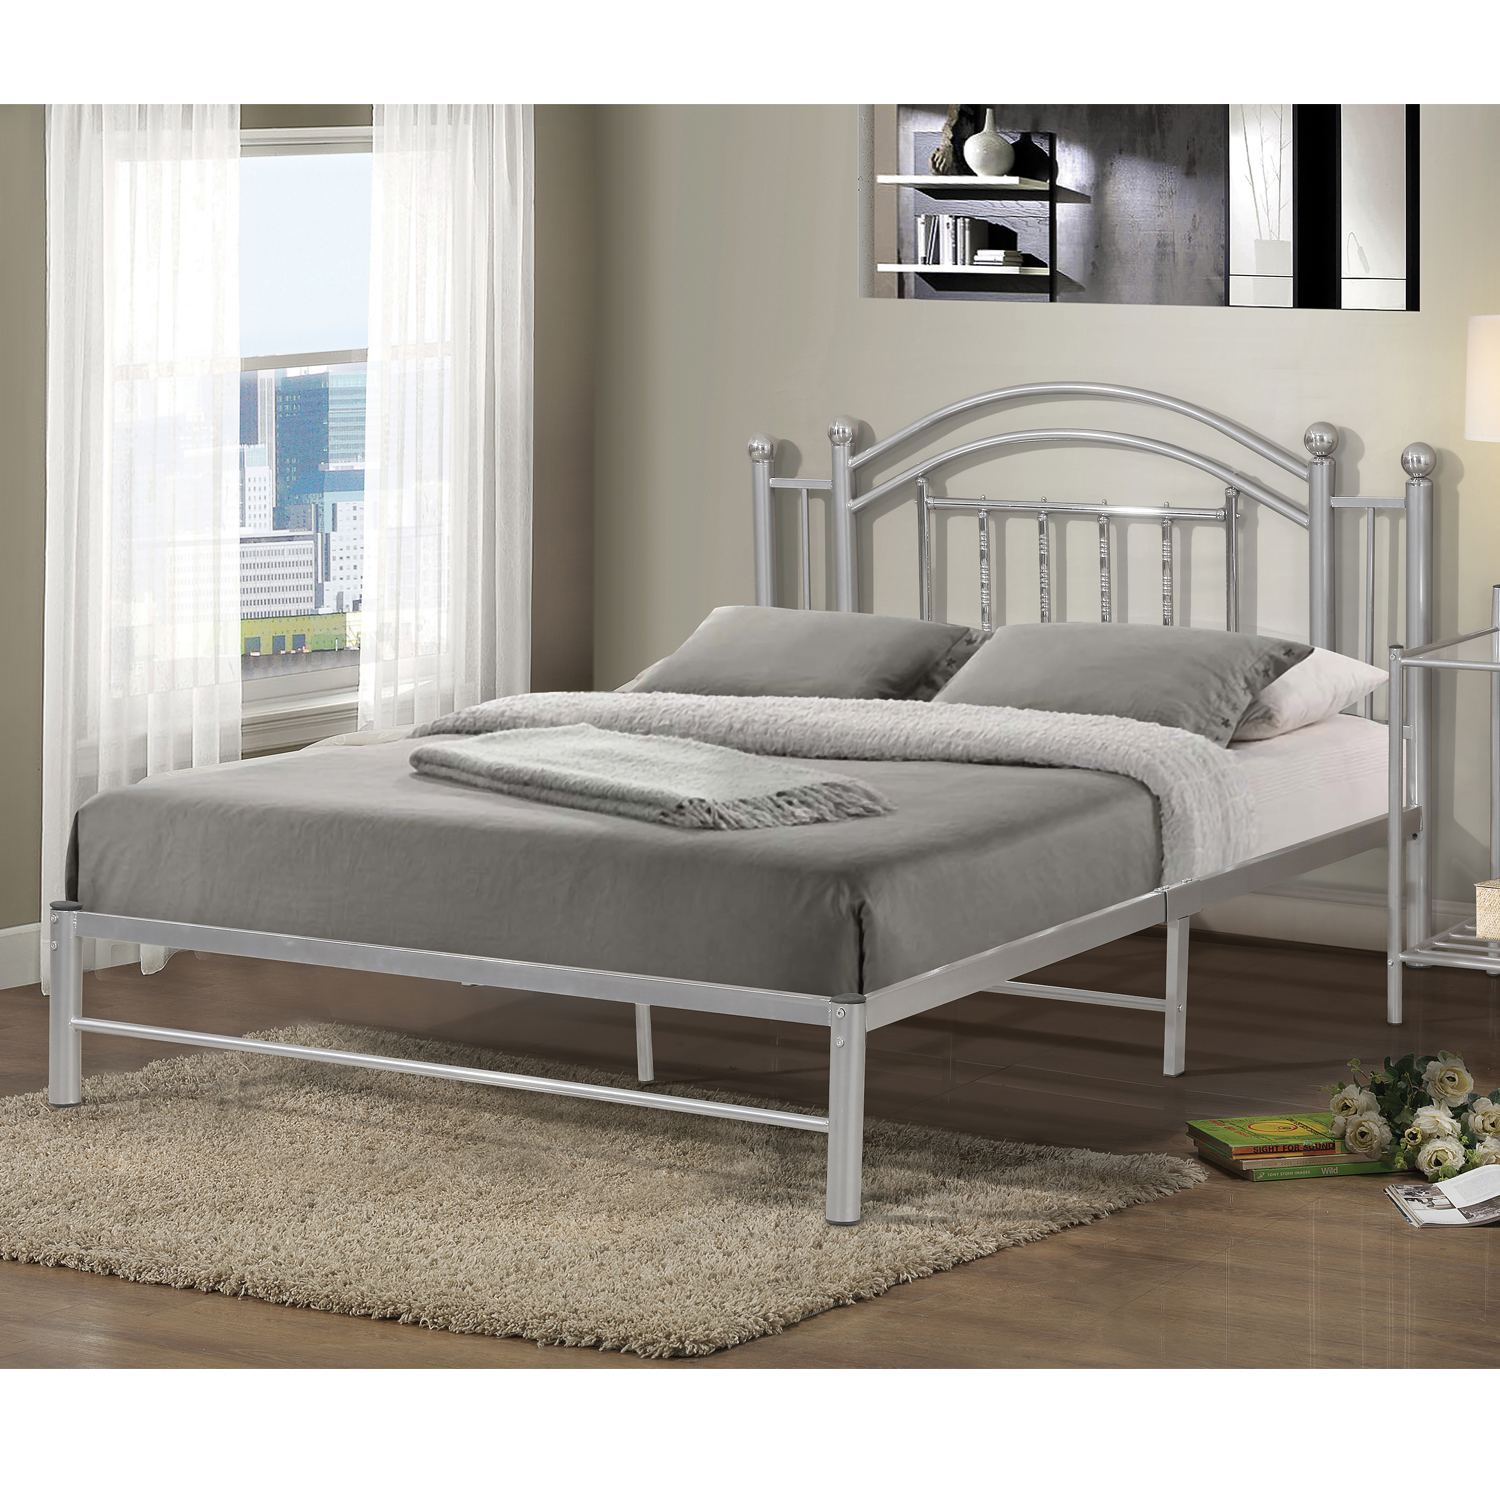 Home Source Kean Silver Chrome Twin Bed